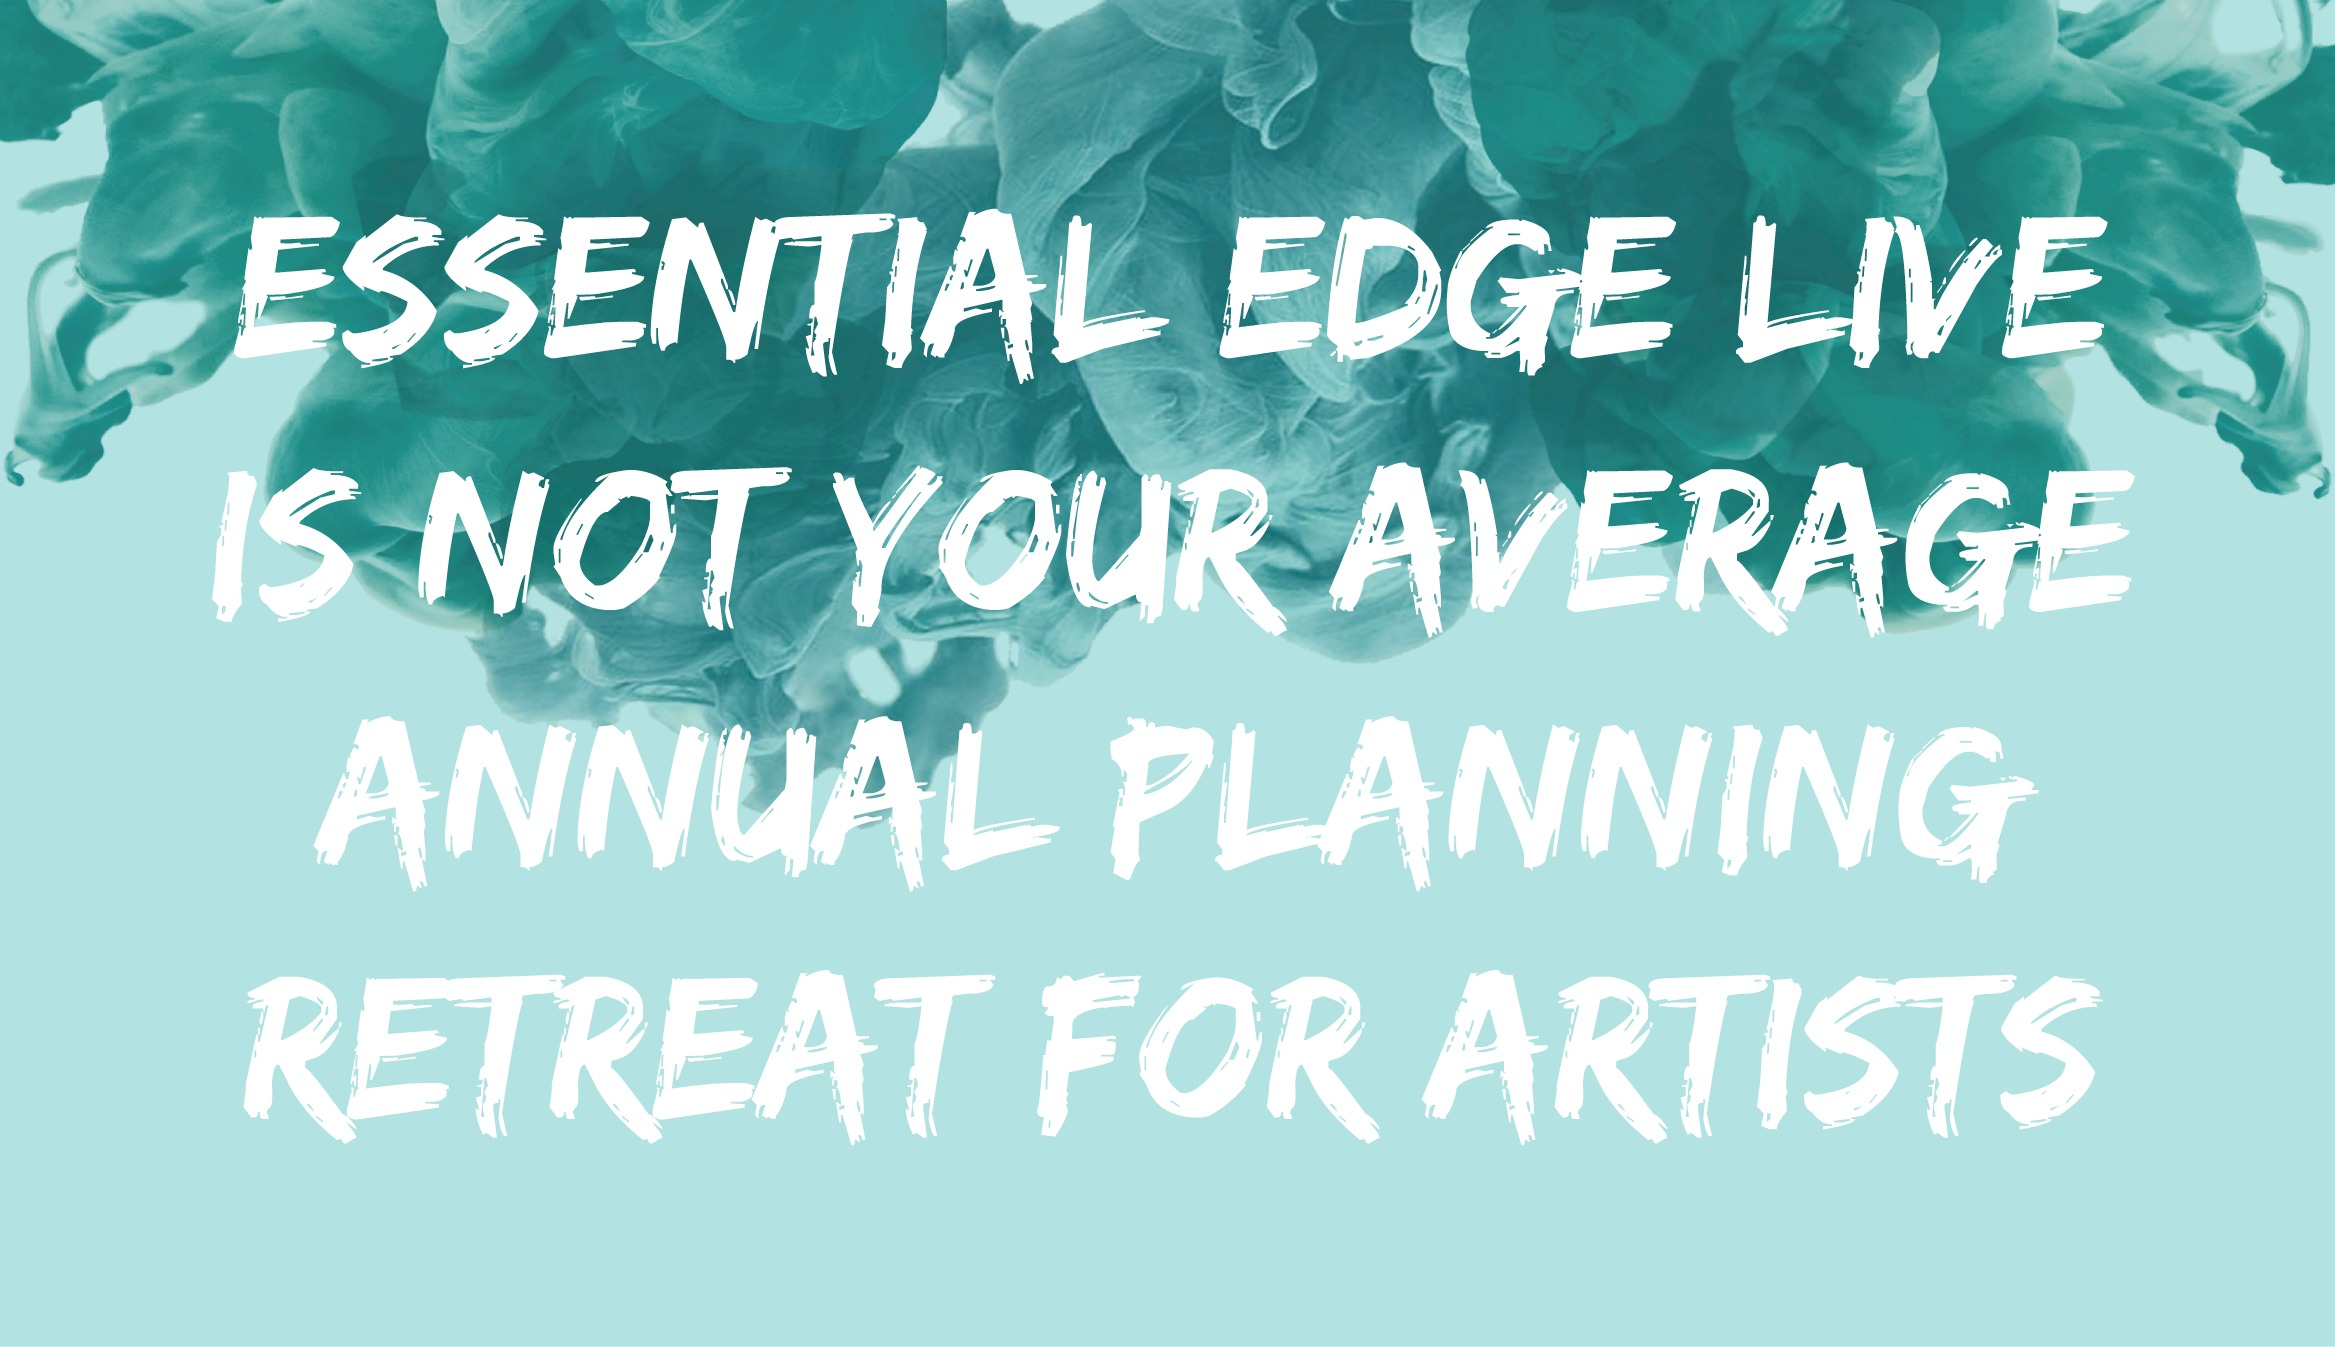 Essential Edge Live is Not Your Average Annual Planning Retreat for Artists...